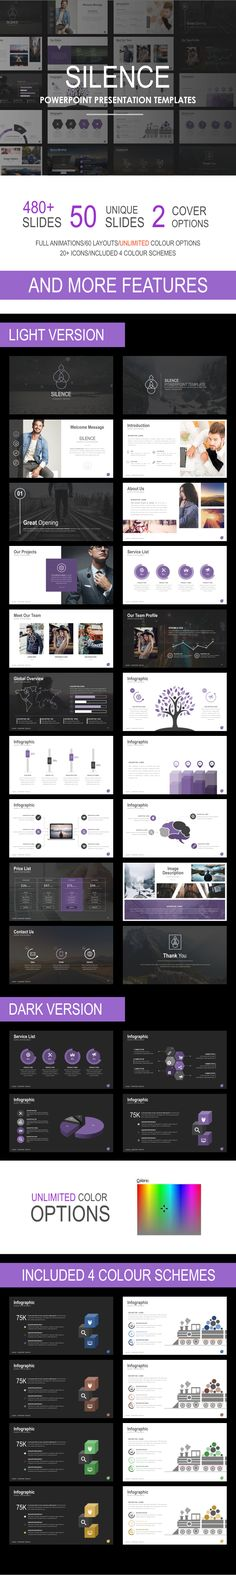 Silence Powerpoint Template  #elegant #corporate • Download ➝ https://graphicriver.net/item/silence-powerpoint-template/18582704?ref=pxcr